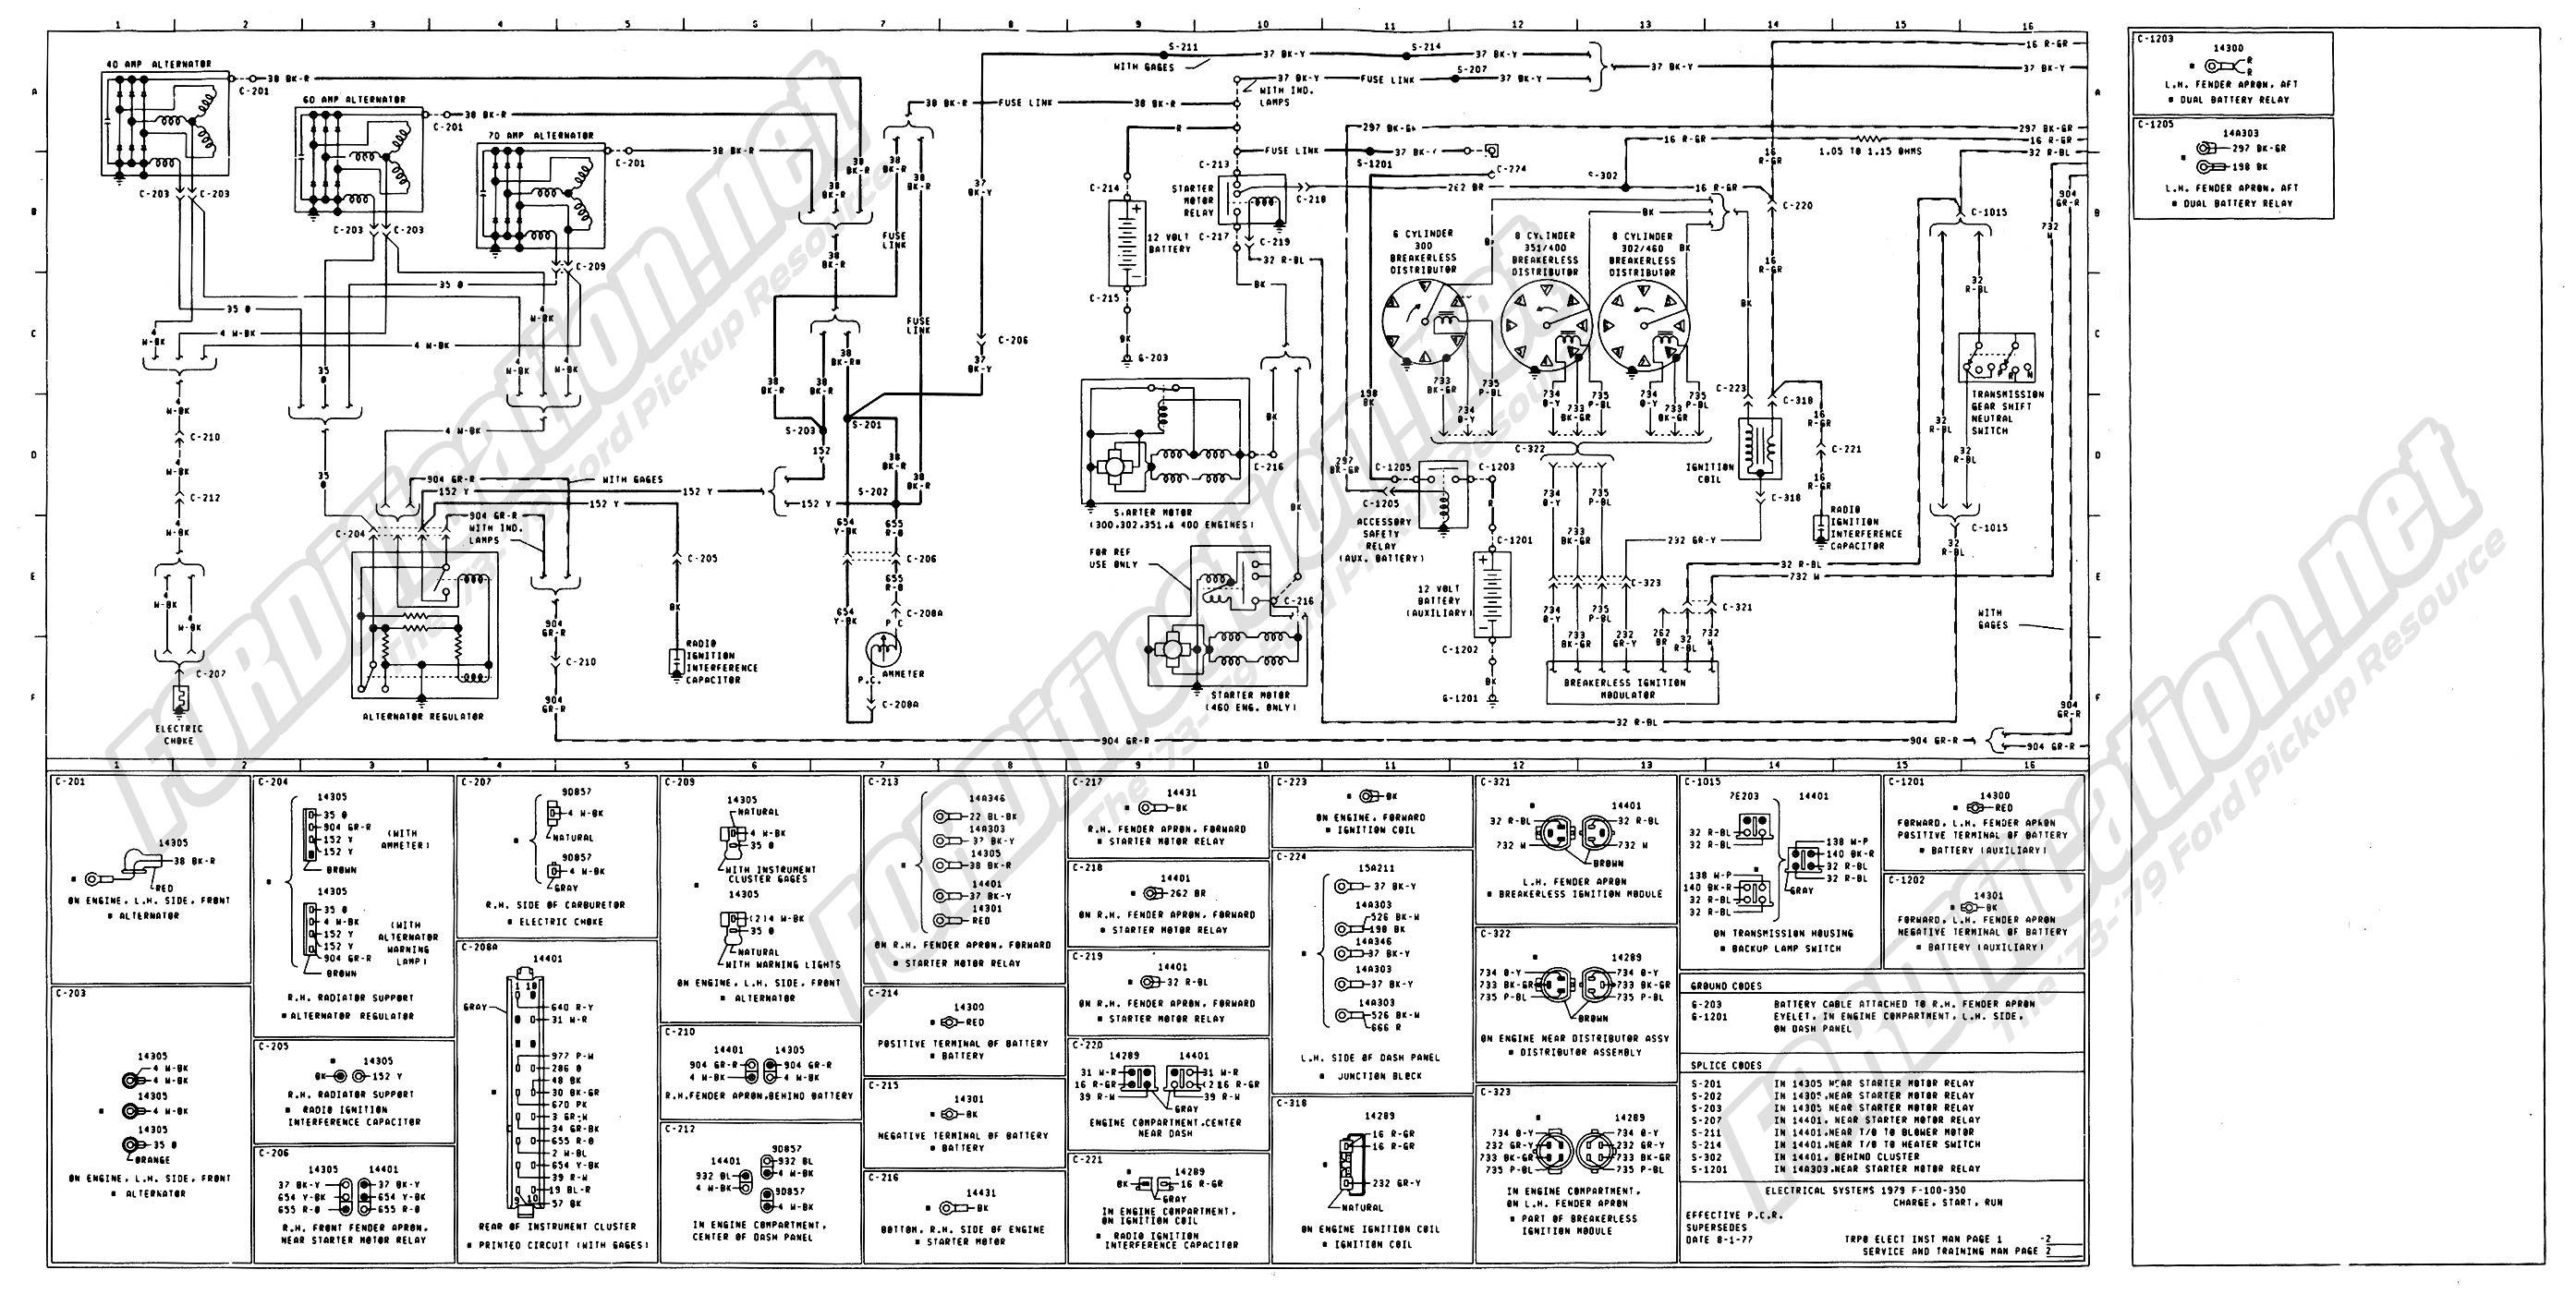 1973 1979 Ford Truck Wiring Diagrams Schematics 2002 Jeep Wrangler Dash Light Diagram